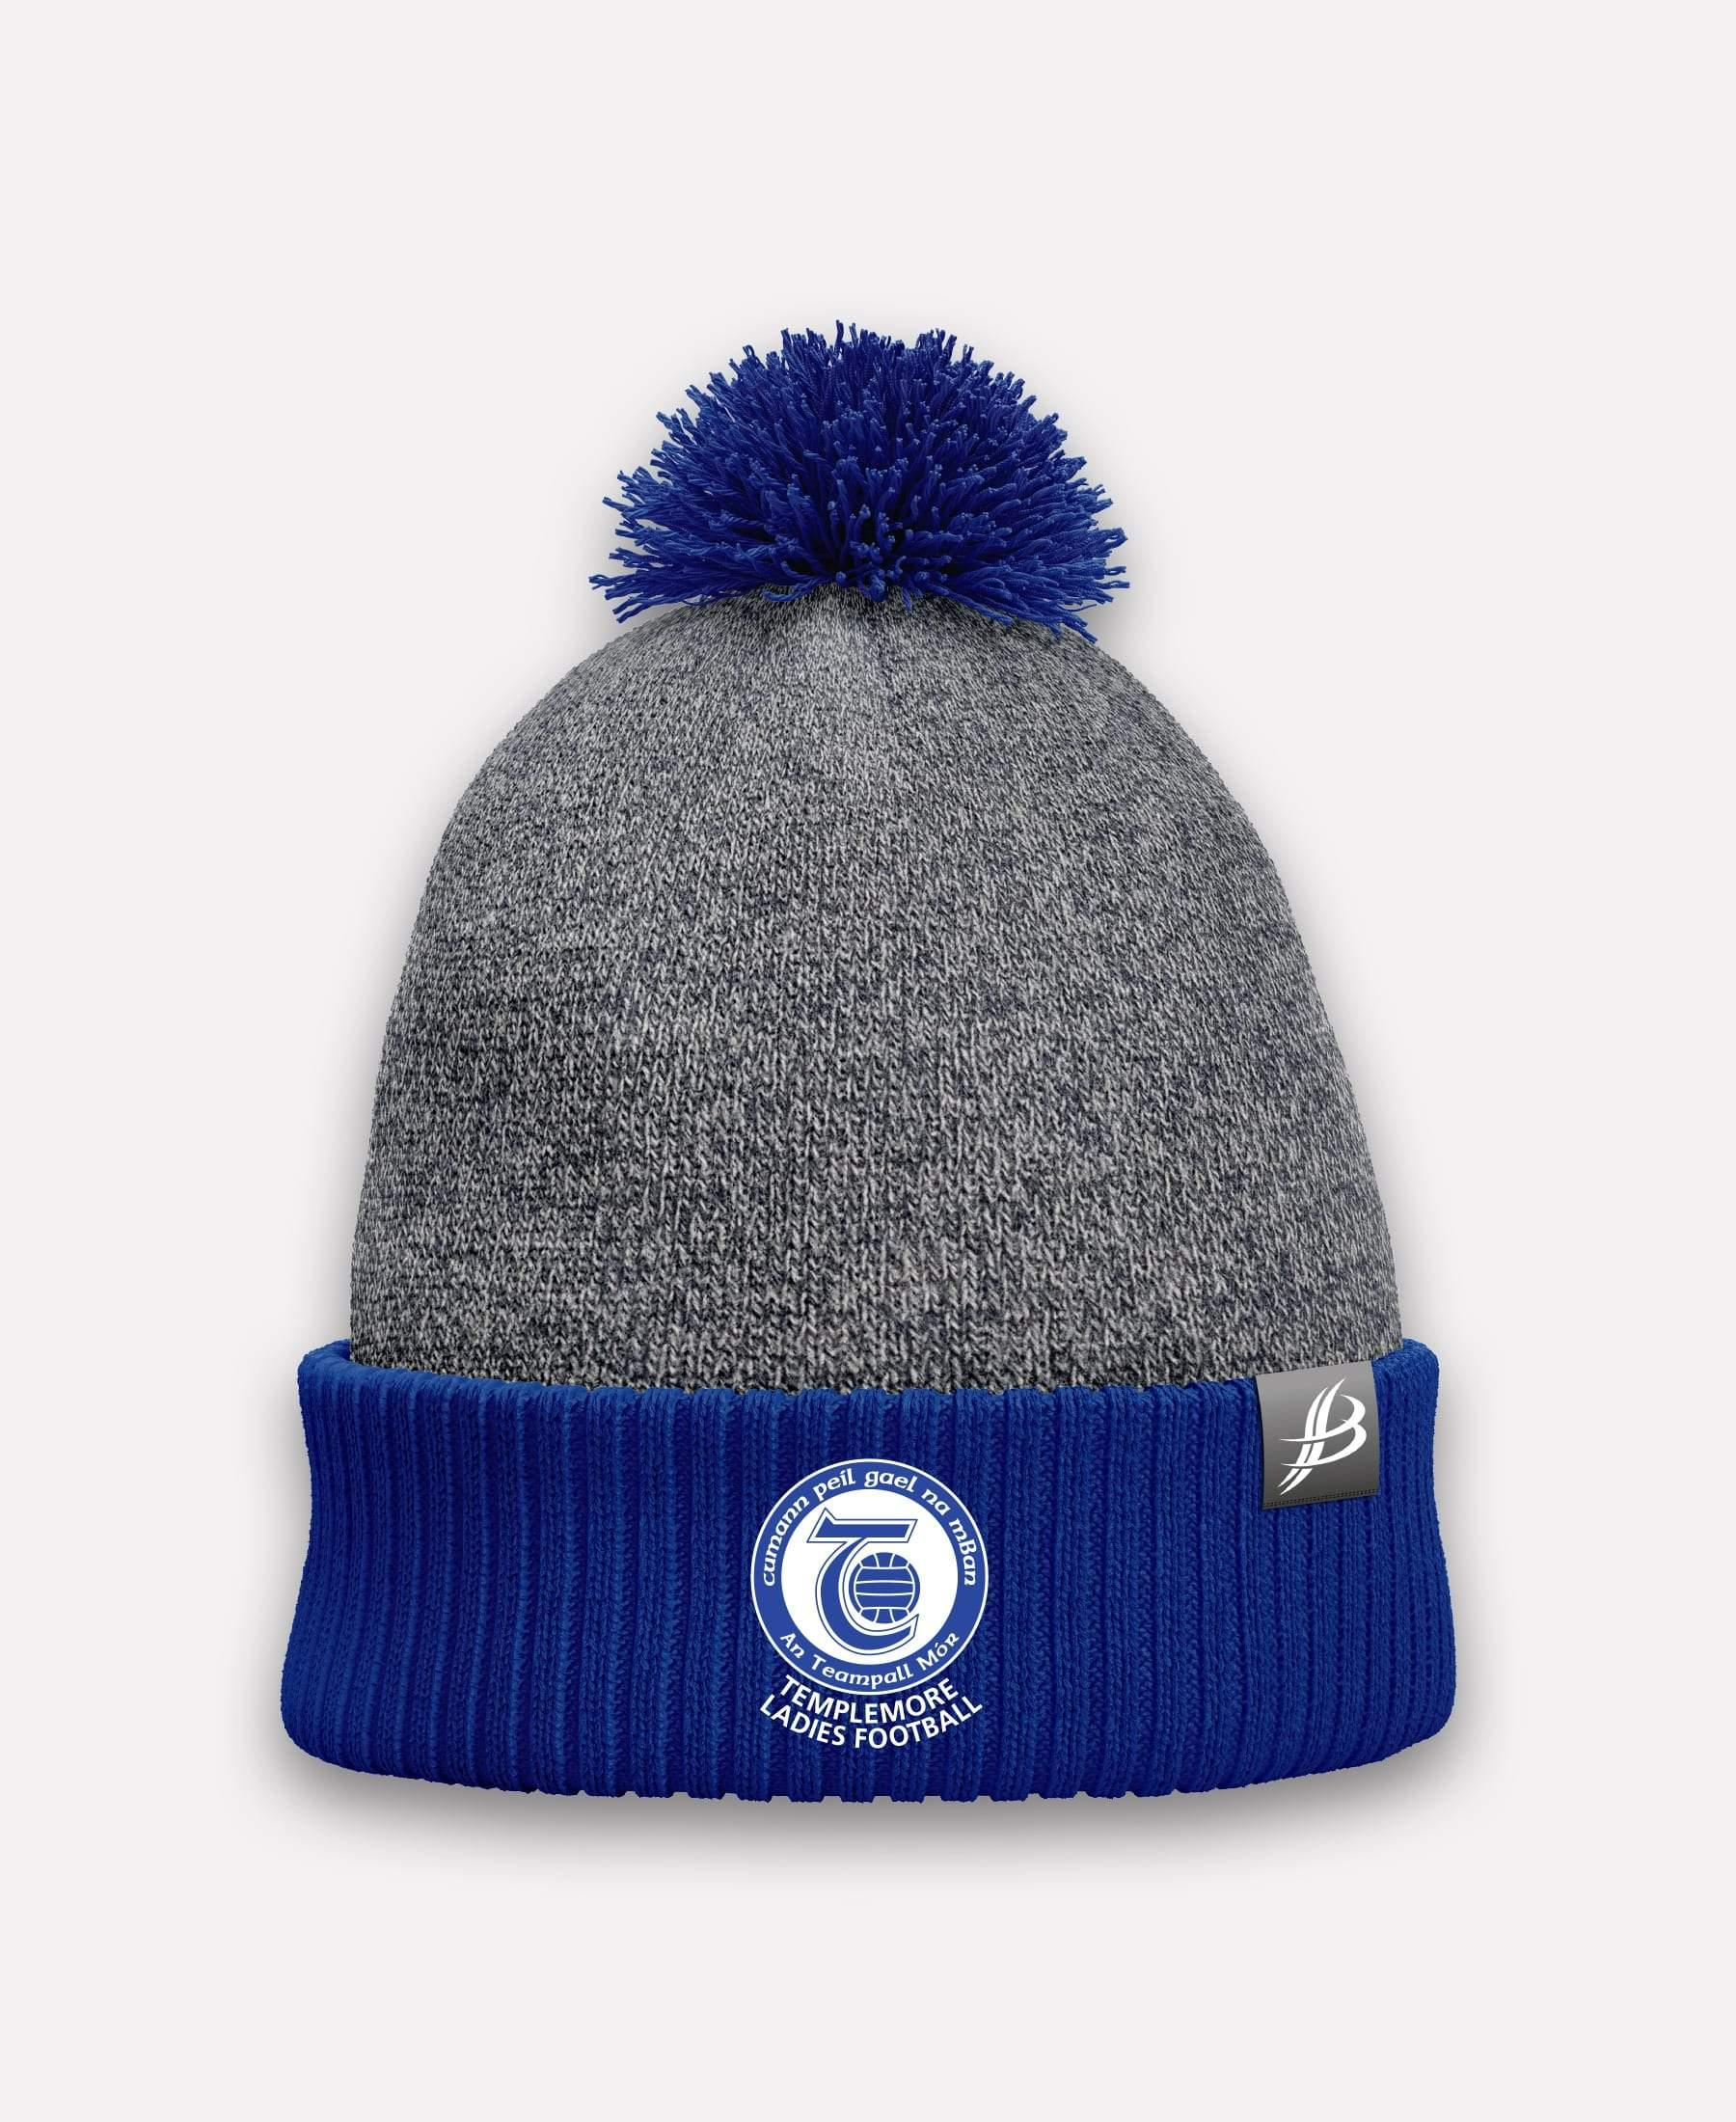 Templemore Ladies Football  Storm Bobble Hat